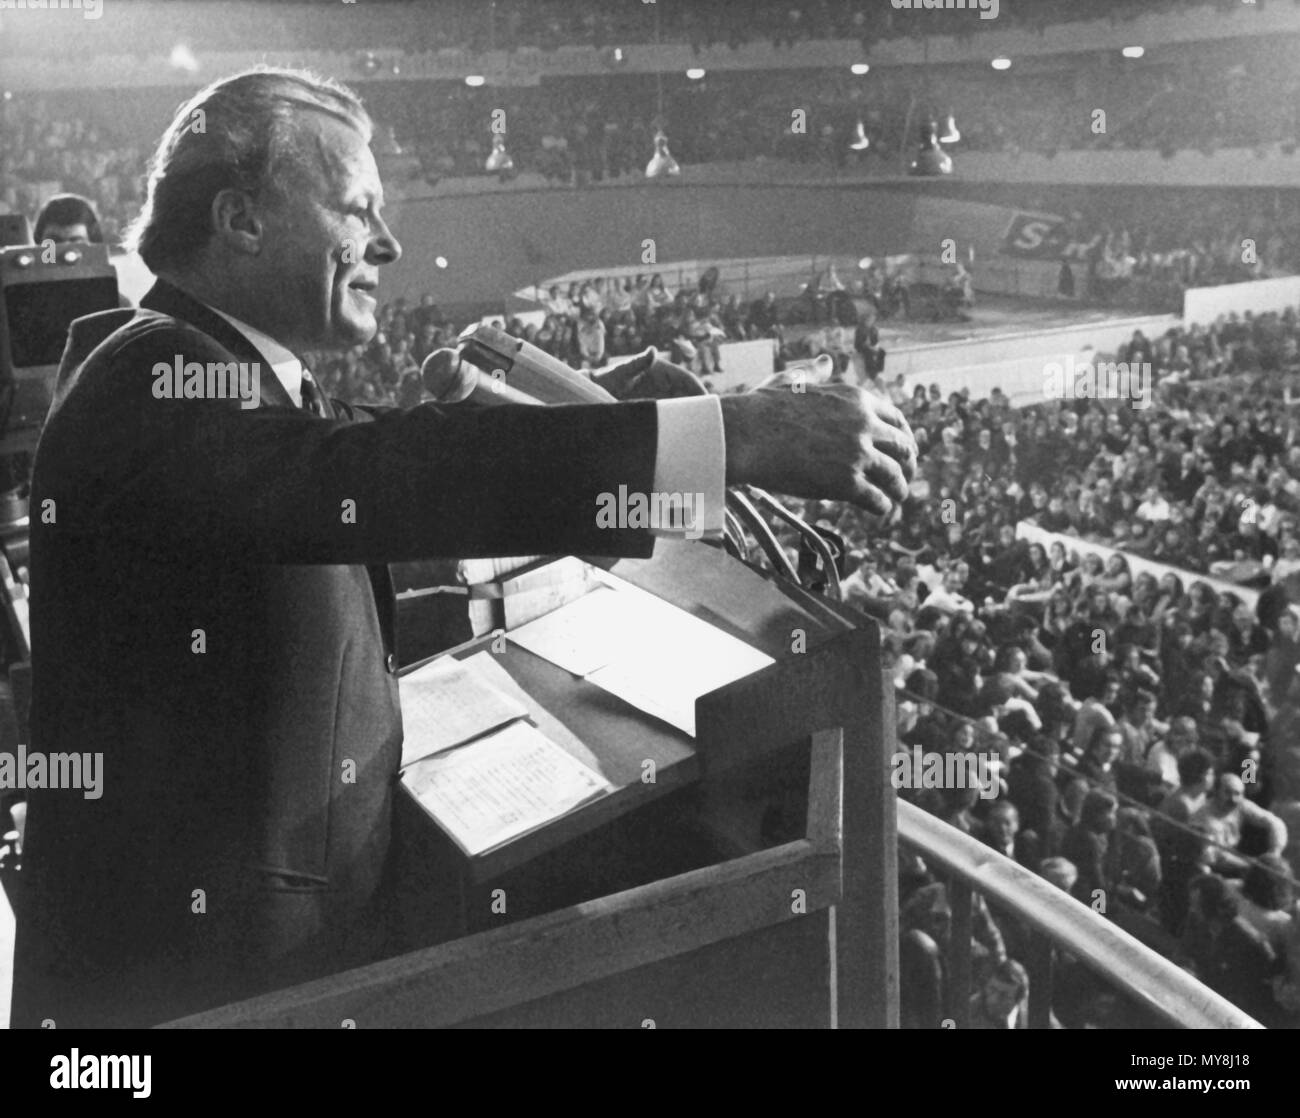 German Chancellor Willy Brandt (SPD) gives an election campaign speech in front of more than ten thousand people at the Festhalle in Frankfurt am Main, Germany, on 13 November 1972. | usage worldwide Stock Photo